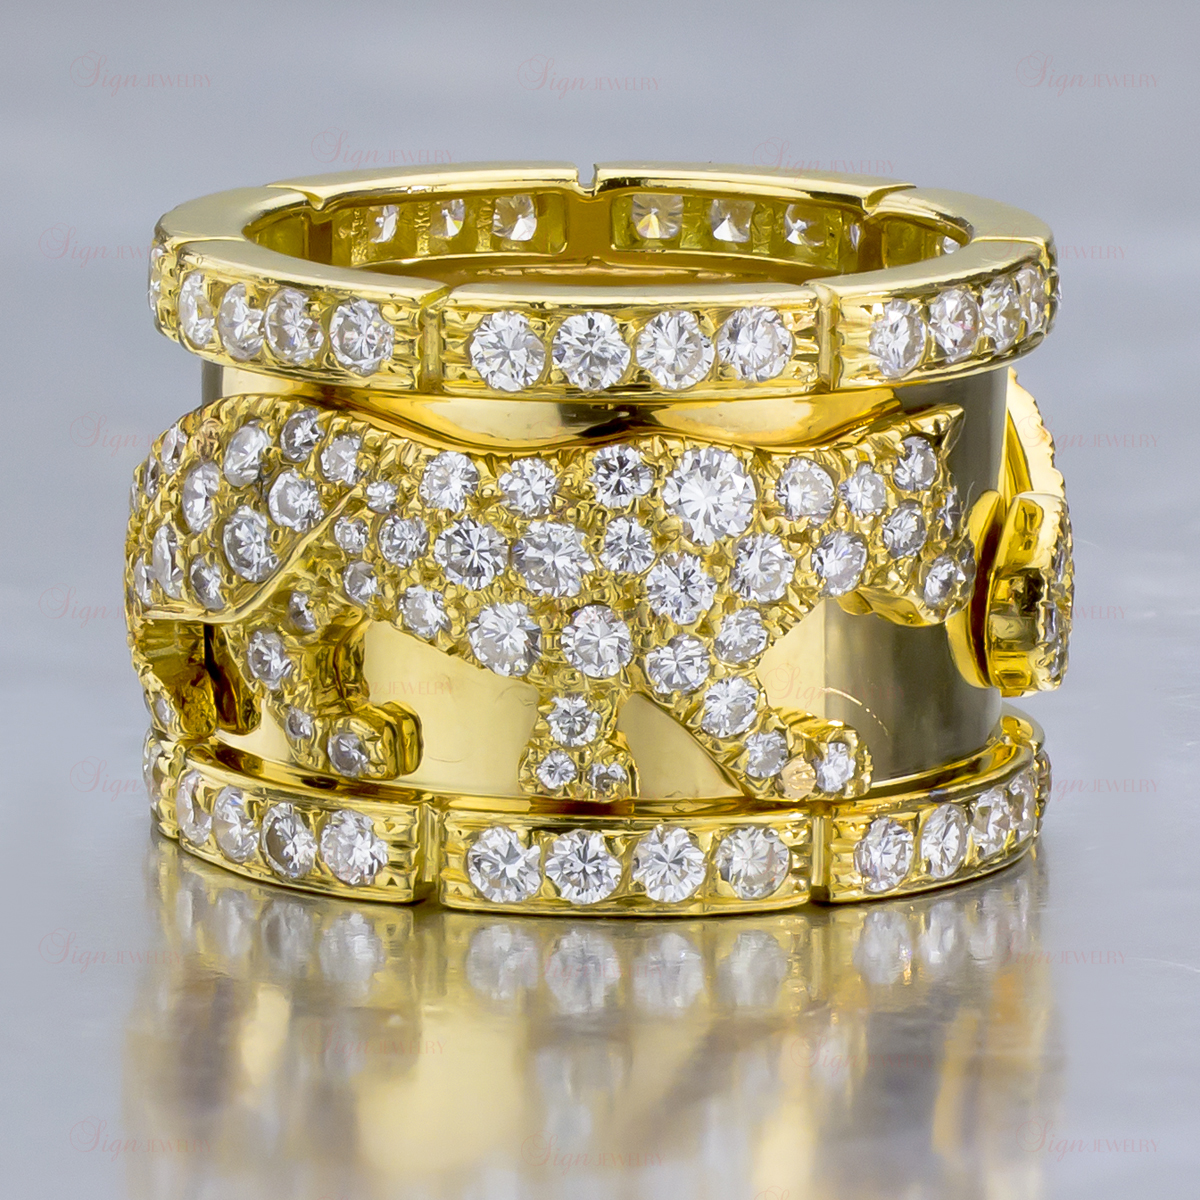 CARTIER Diamond 18k Yellow Gold Panther Ring